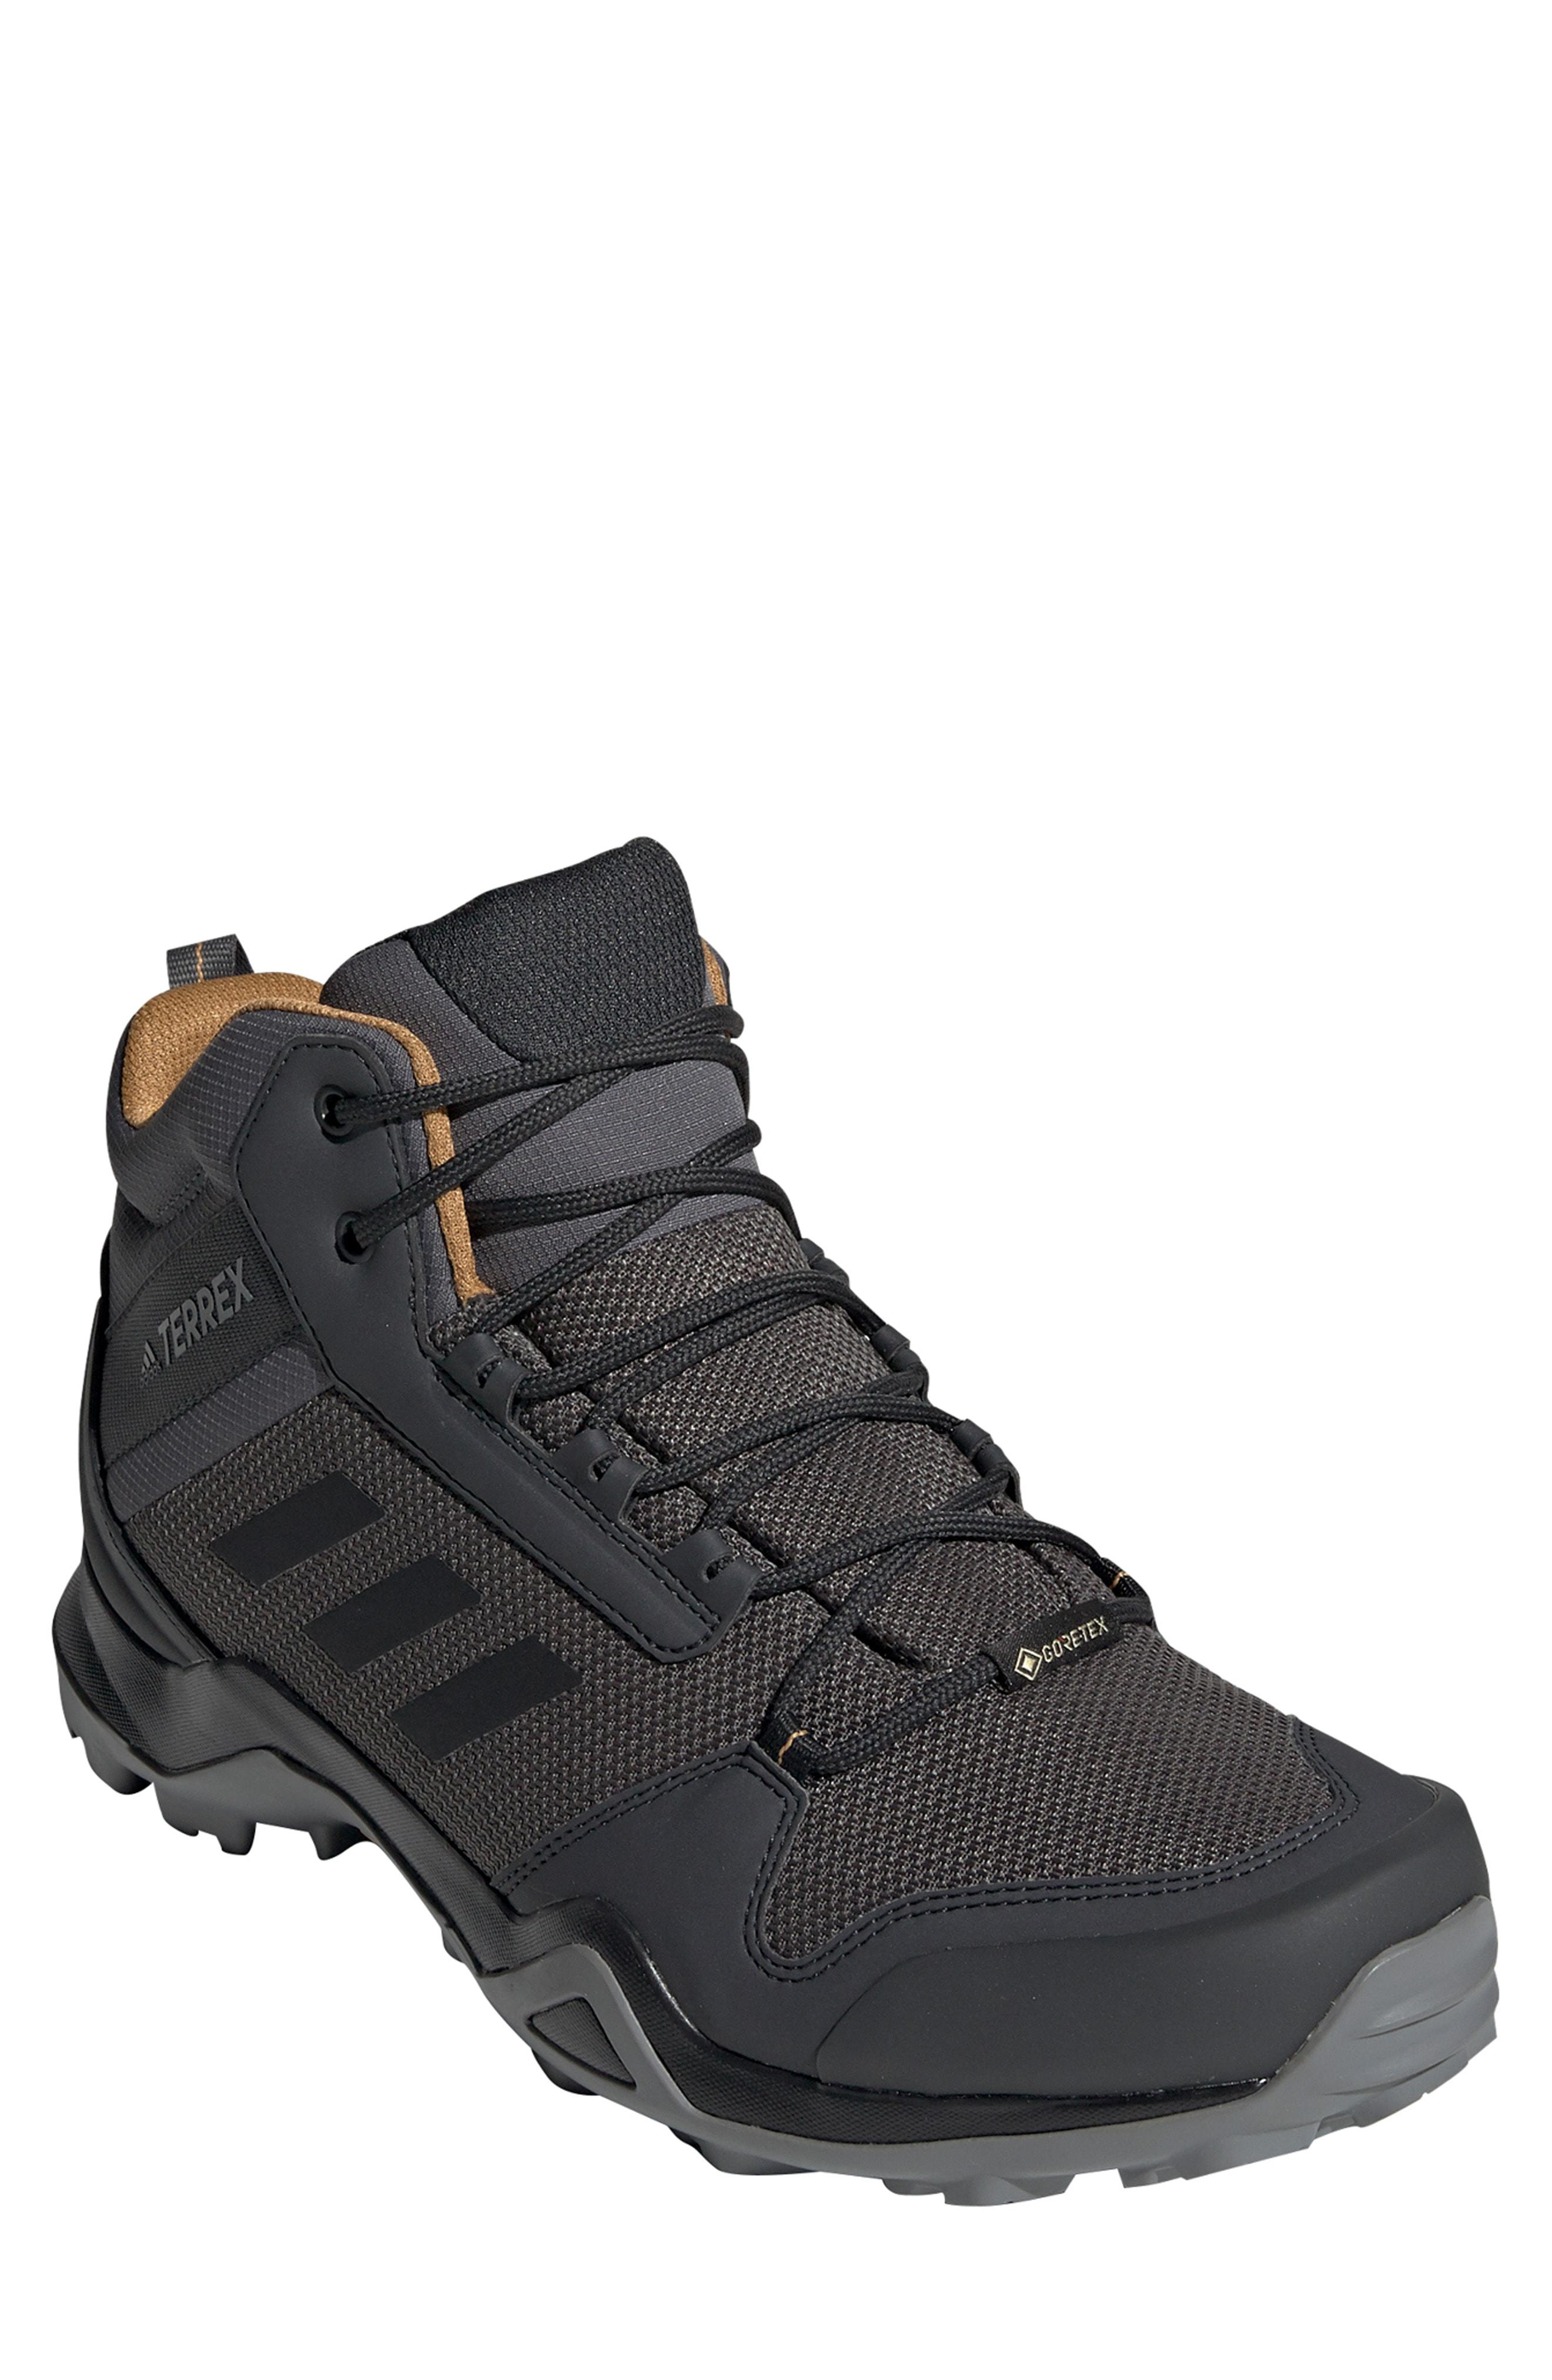 57d40248296e Lyst - Adidas Ax3 Mid Gore-tex Waterproof Hiking Shoe in Black for Men